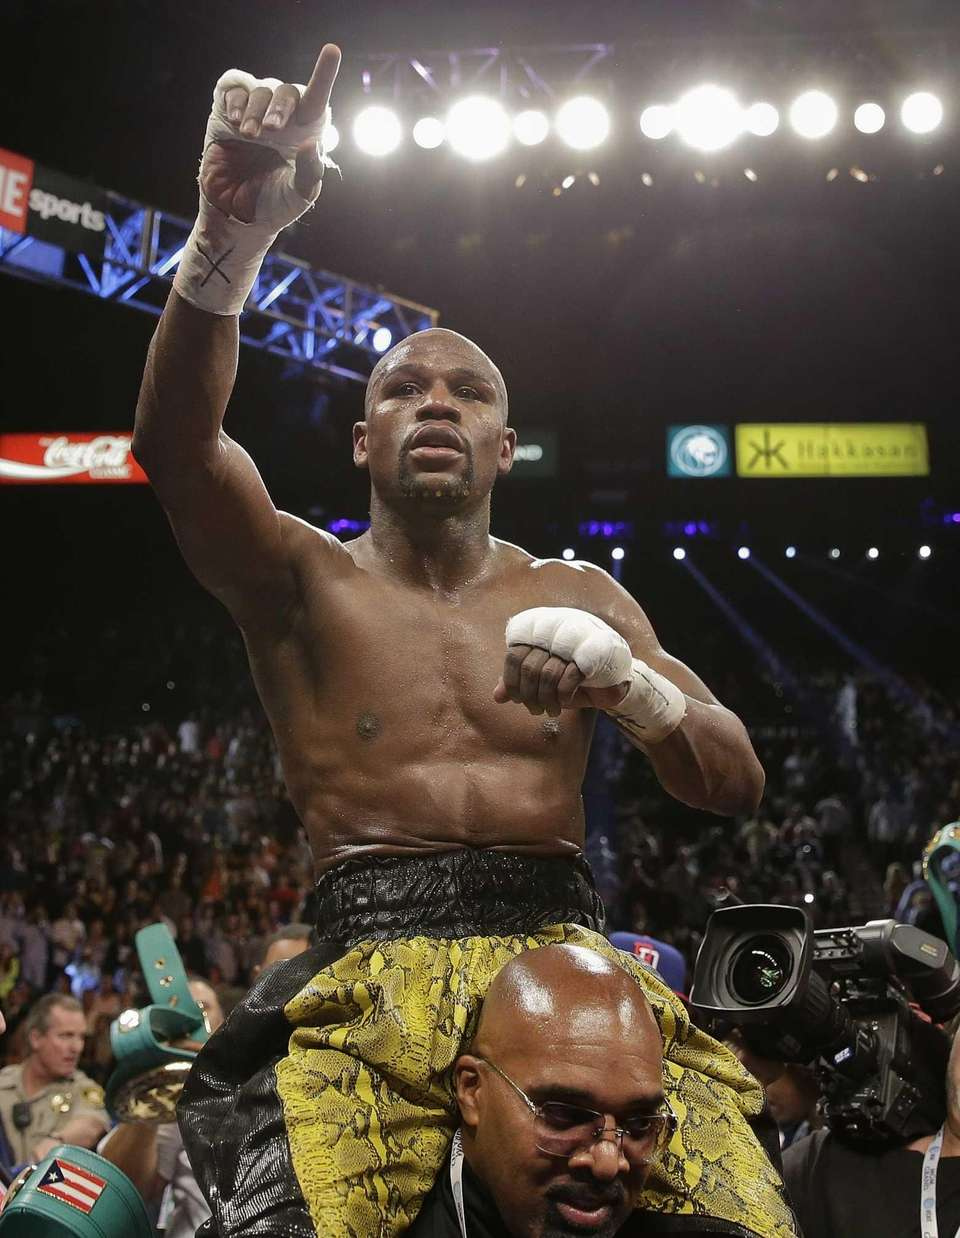 Floyd Mayweather Jr. reacts to fans as he